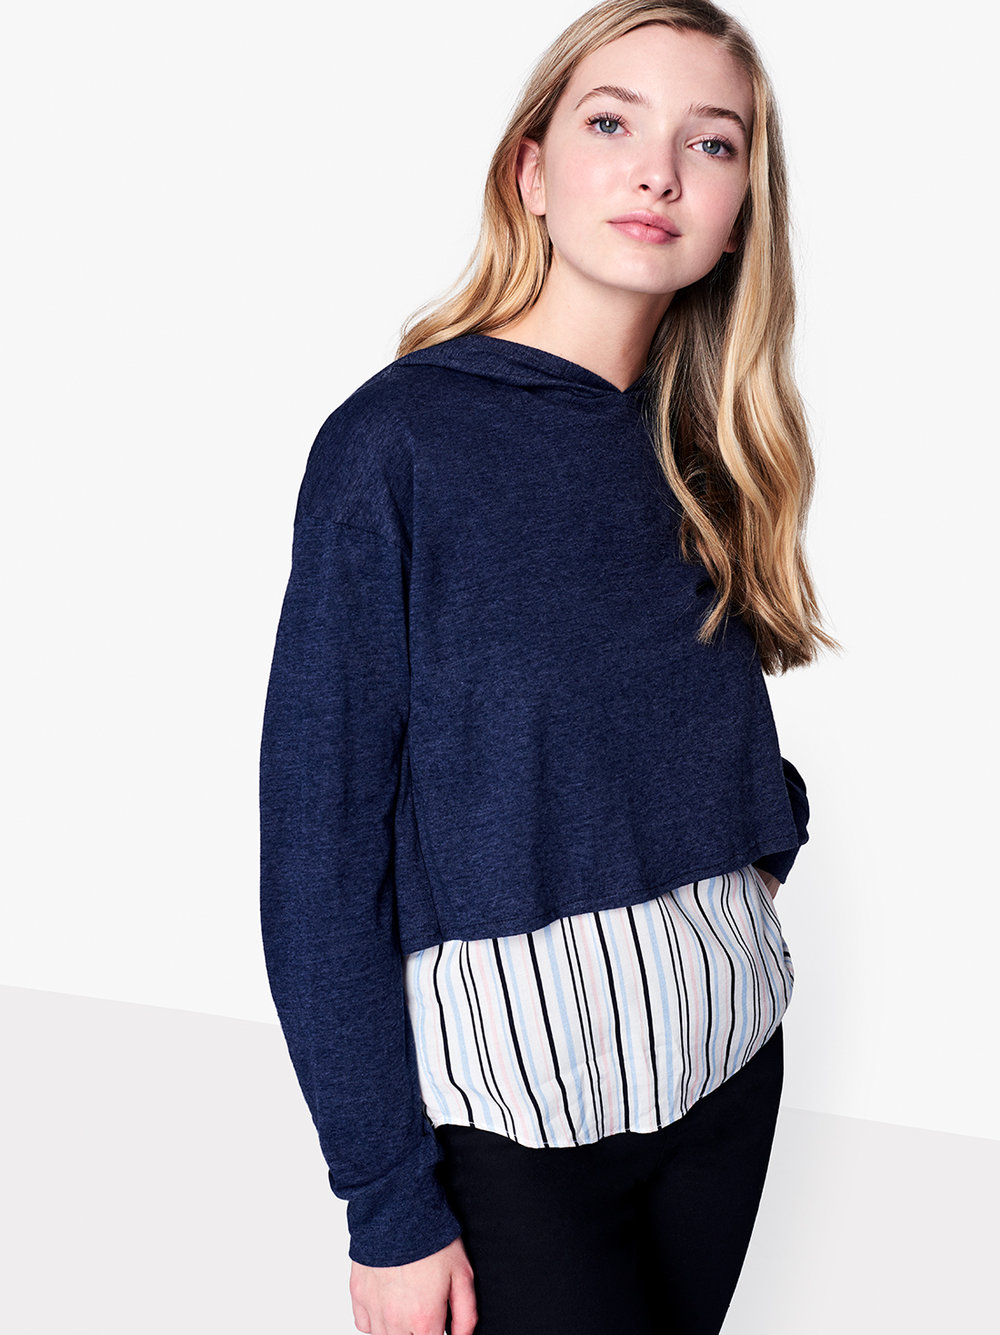 1186945 - NAVY HOODIE W  STRIPED SHIRT UNDERLAY_040.jpg